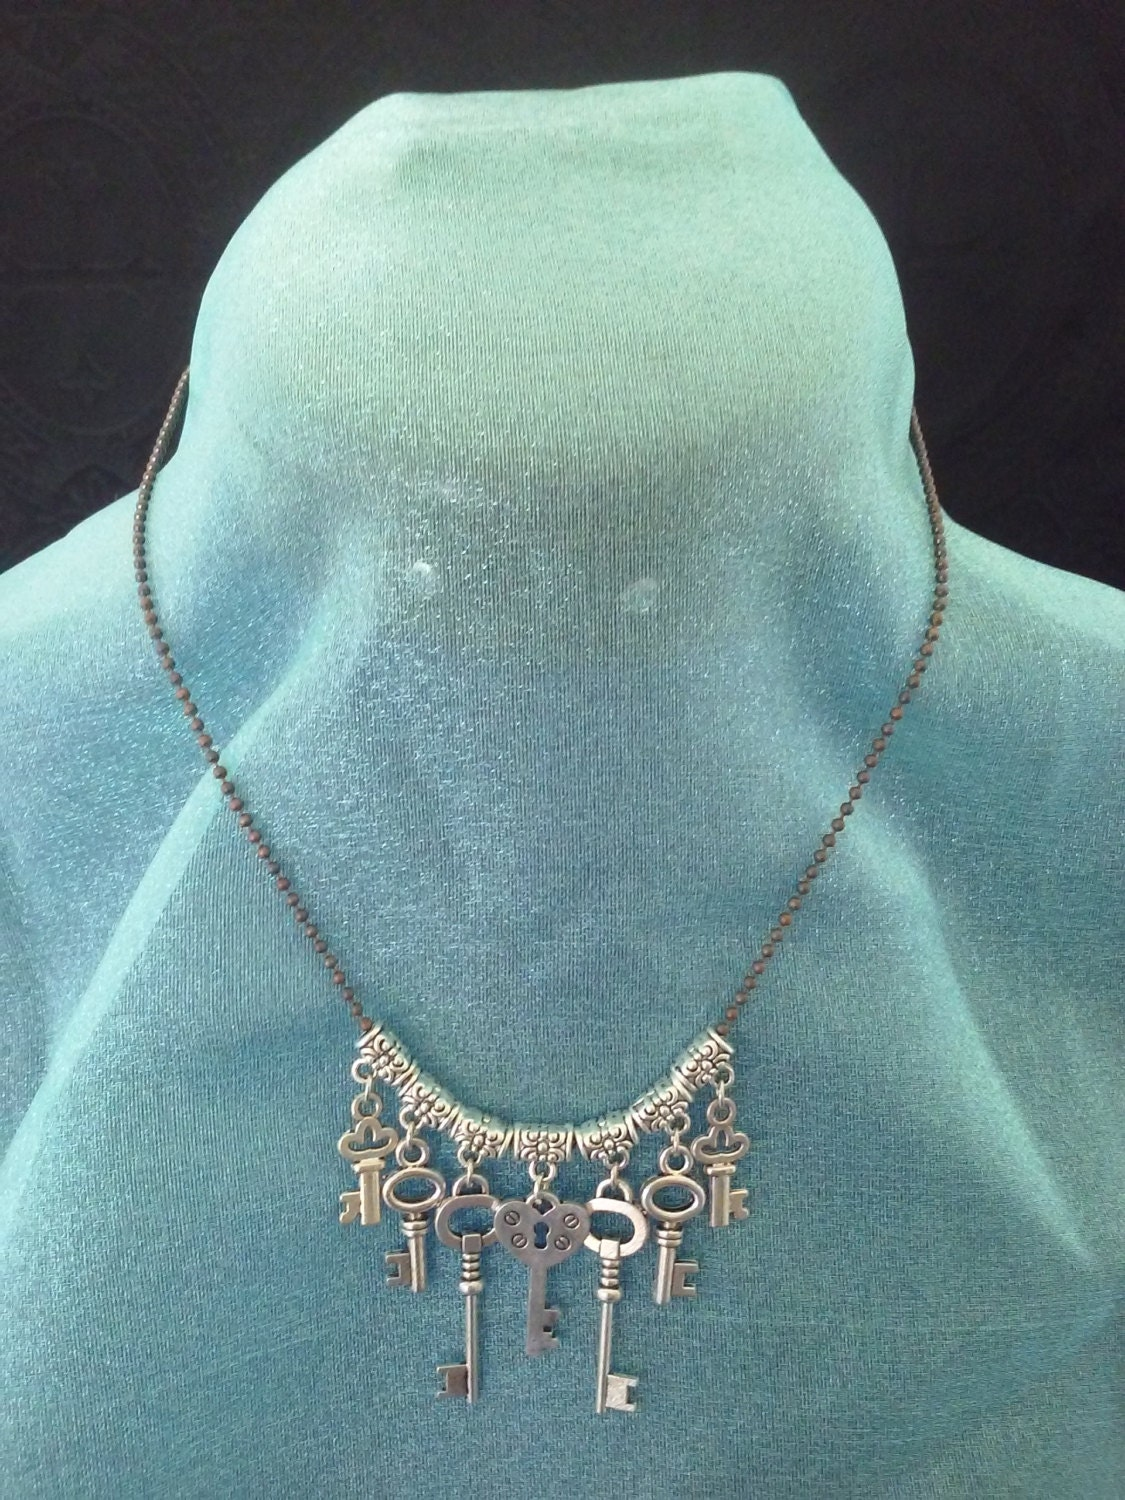 Keeper of the Seven Keys Helloween Music Inspired Necklace Goblin Krafts Jewelry Steampunk Fantasy Gothic Lolita